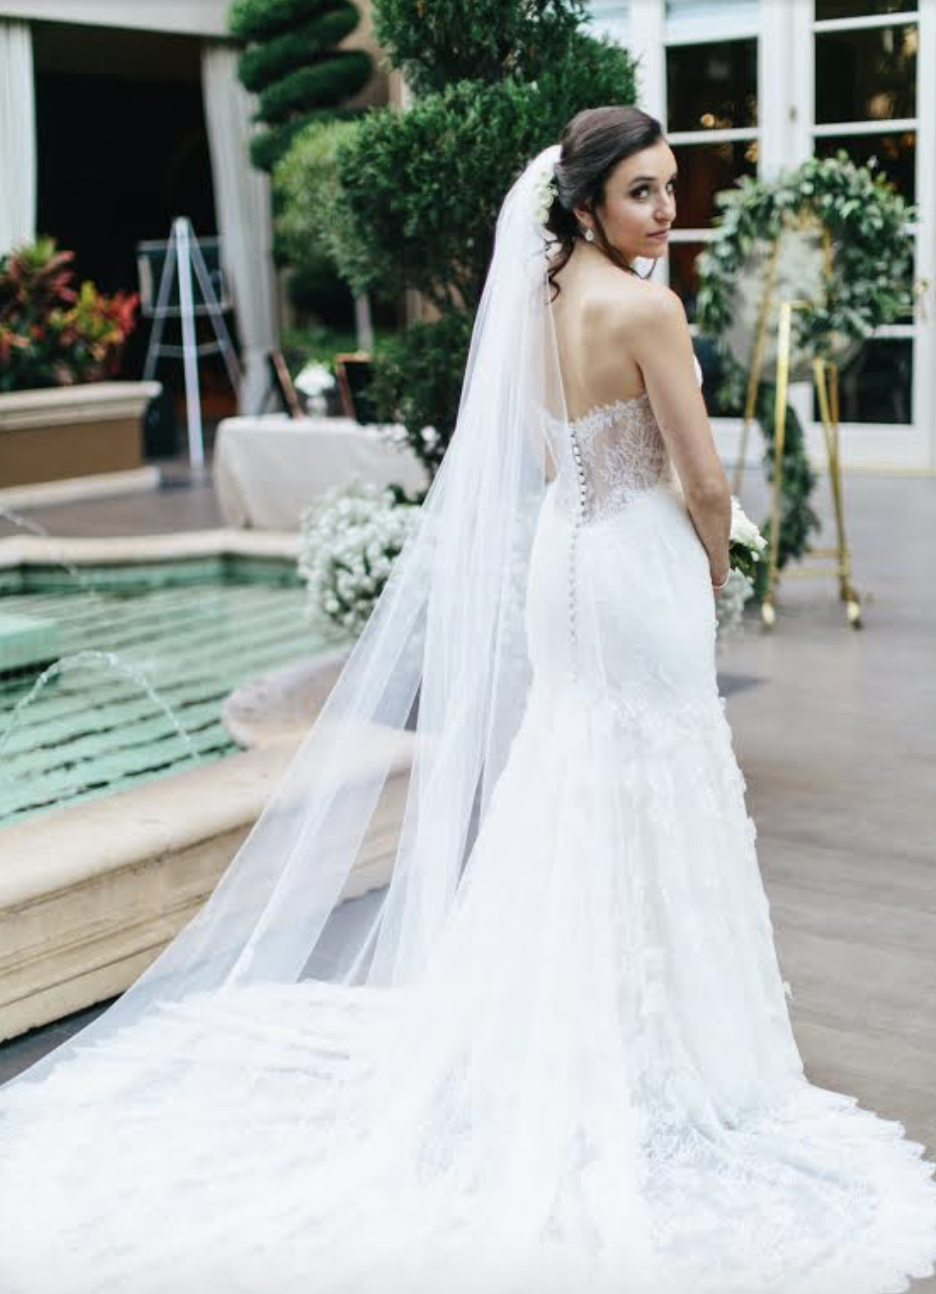 Real bride: Jaclyn - Strapless French Lace Mermaid Dress (A custom design by Jaclyn)